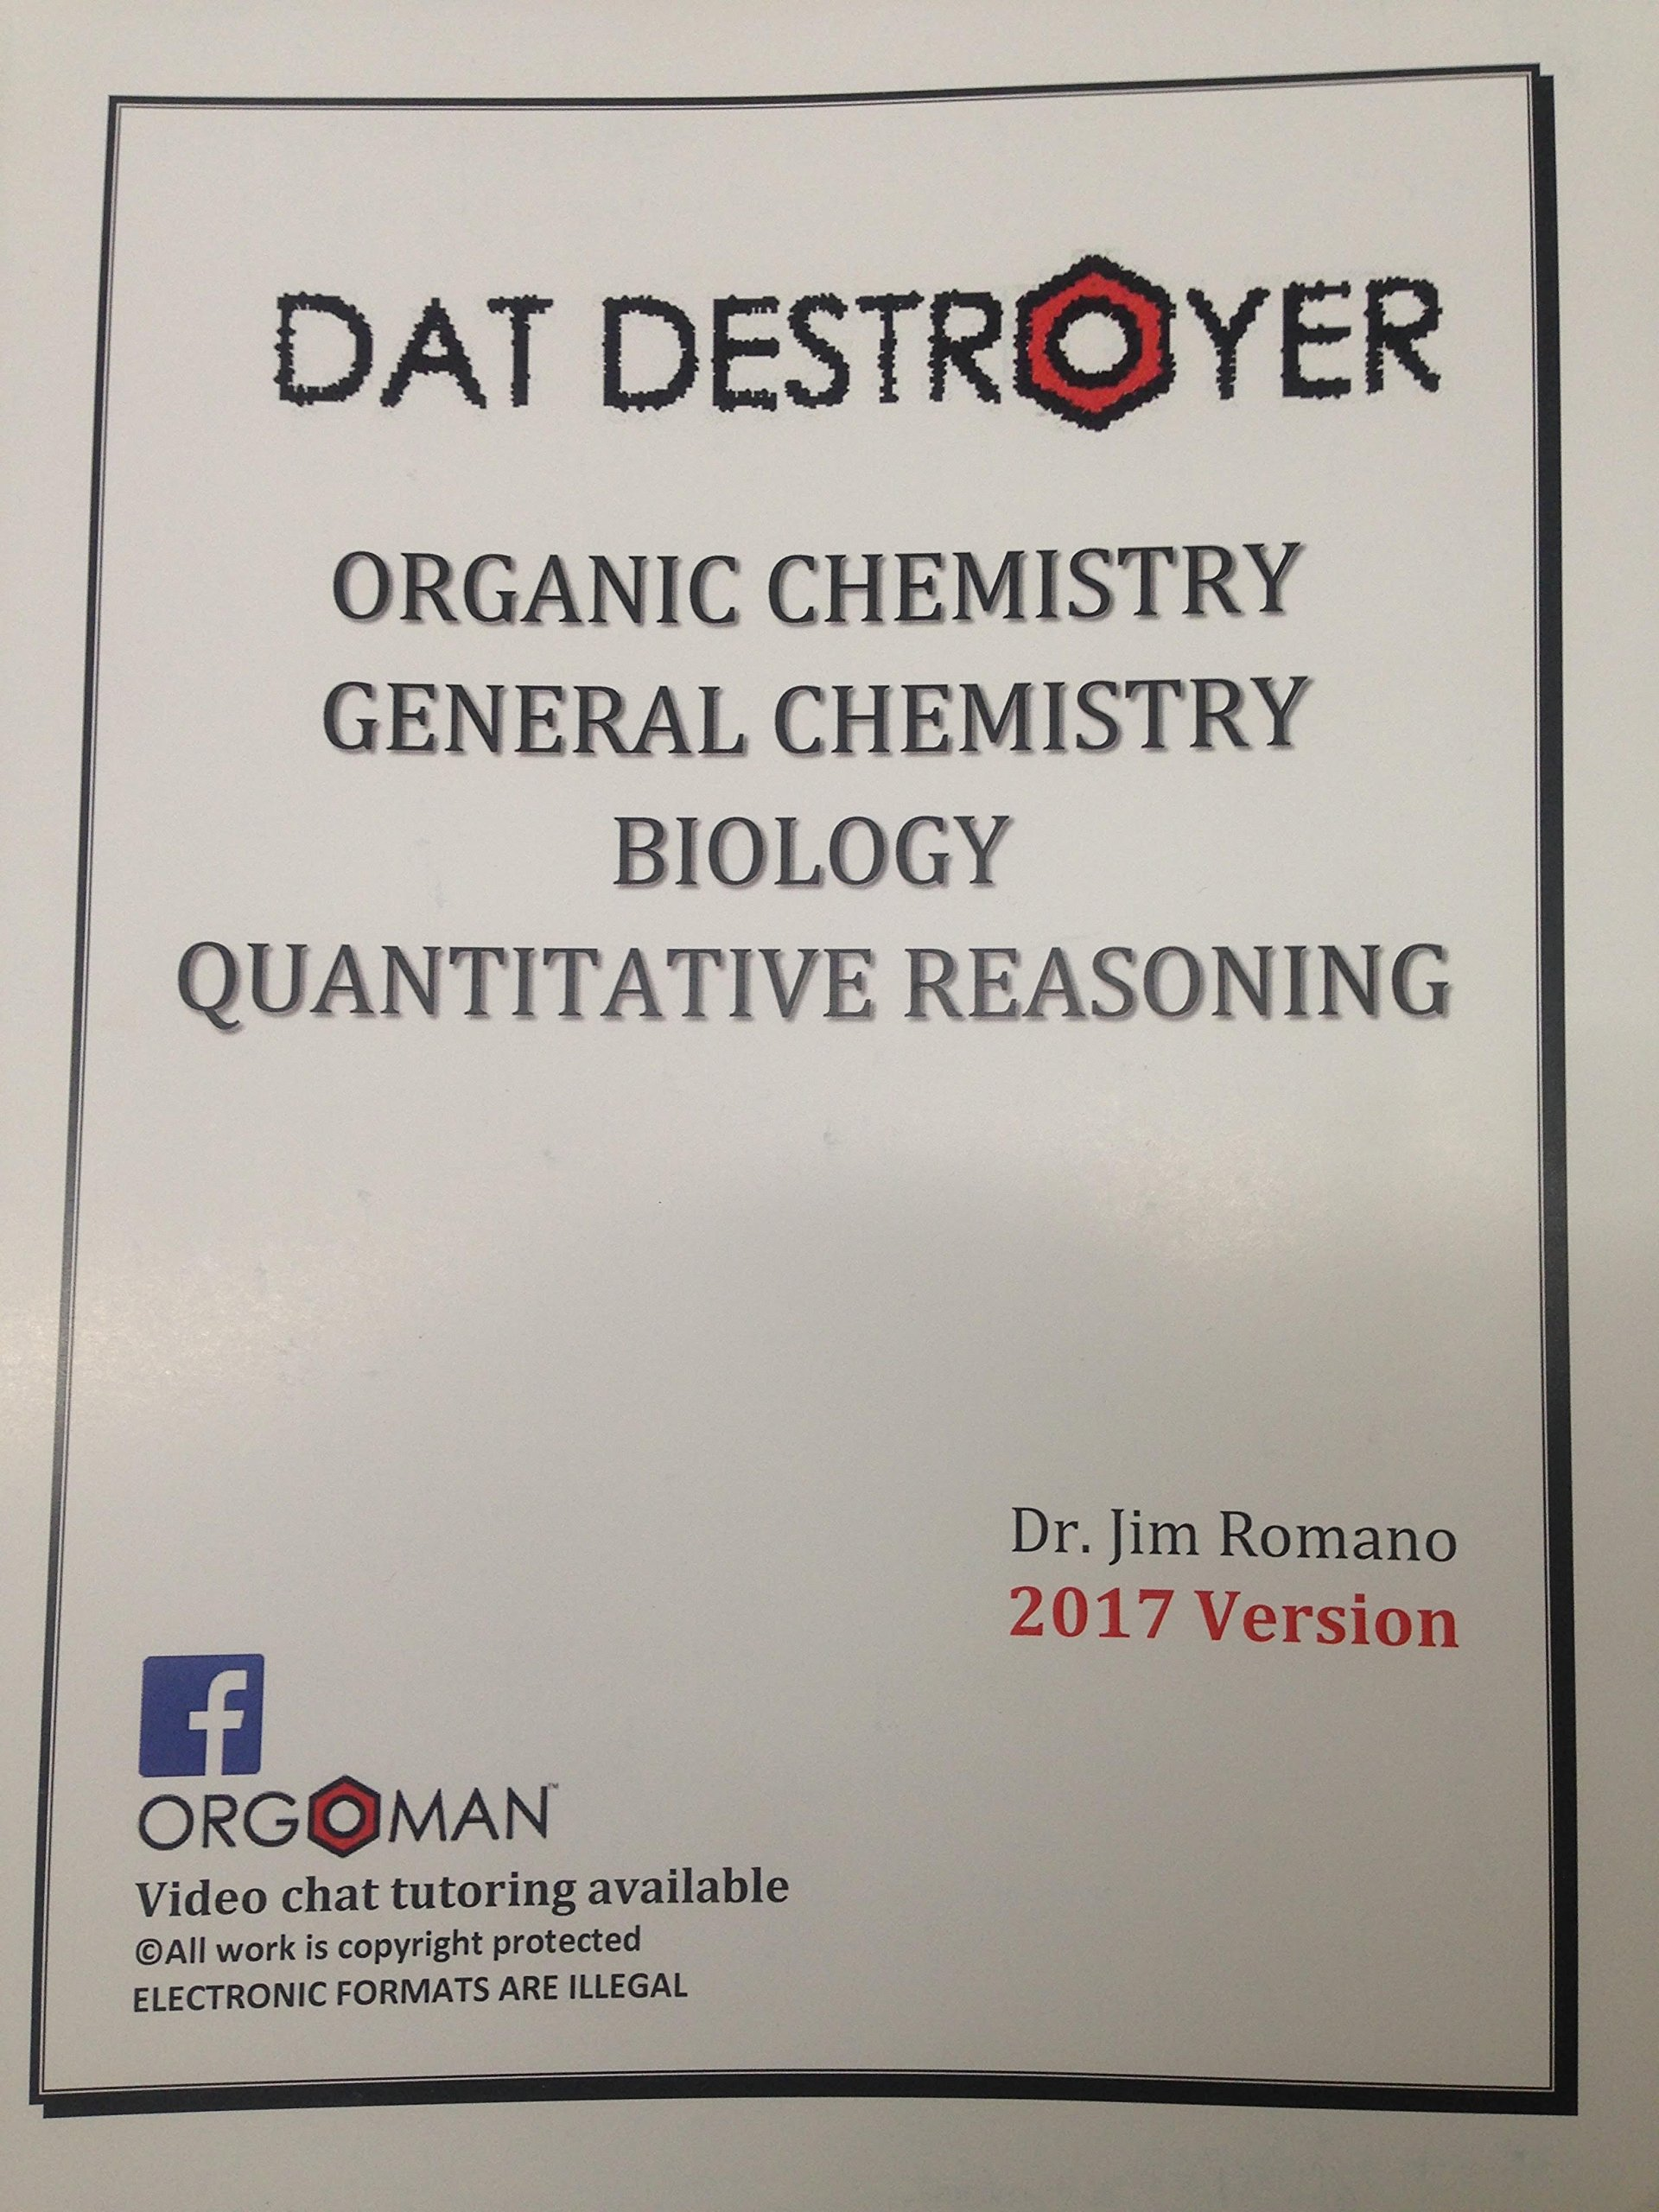 dat destroyer pdf DAT DESTROYER 2017 Version: Dr Jim Romano, Orgoman: Amazon.com: Books